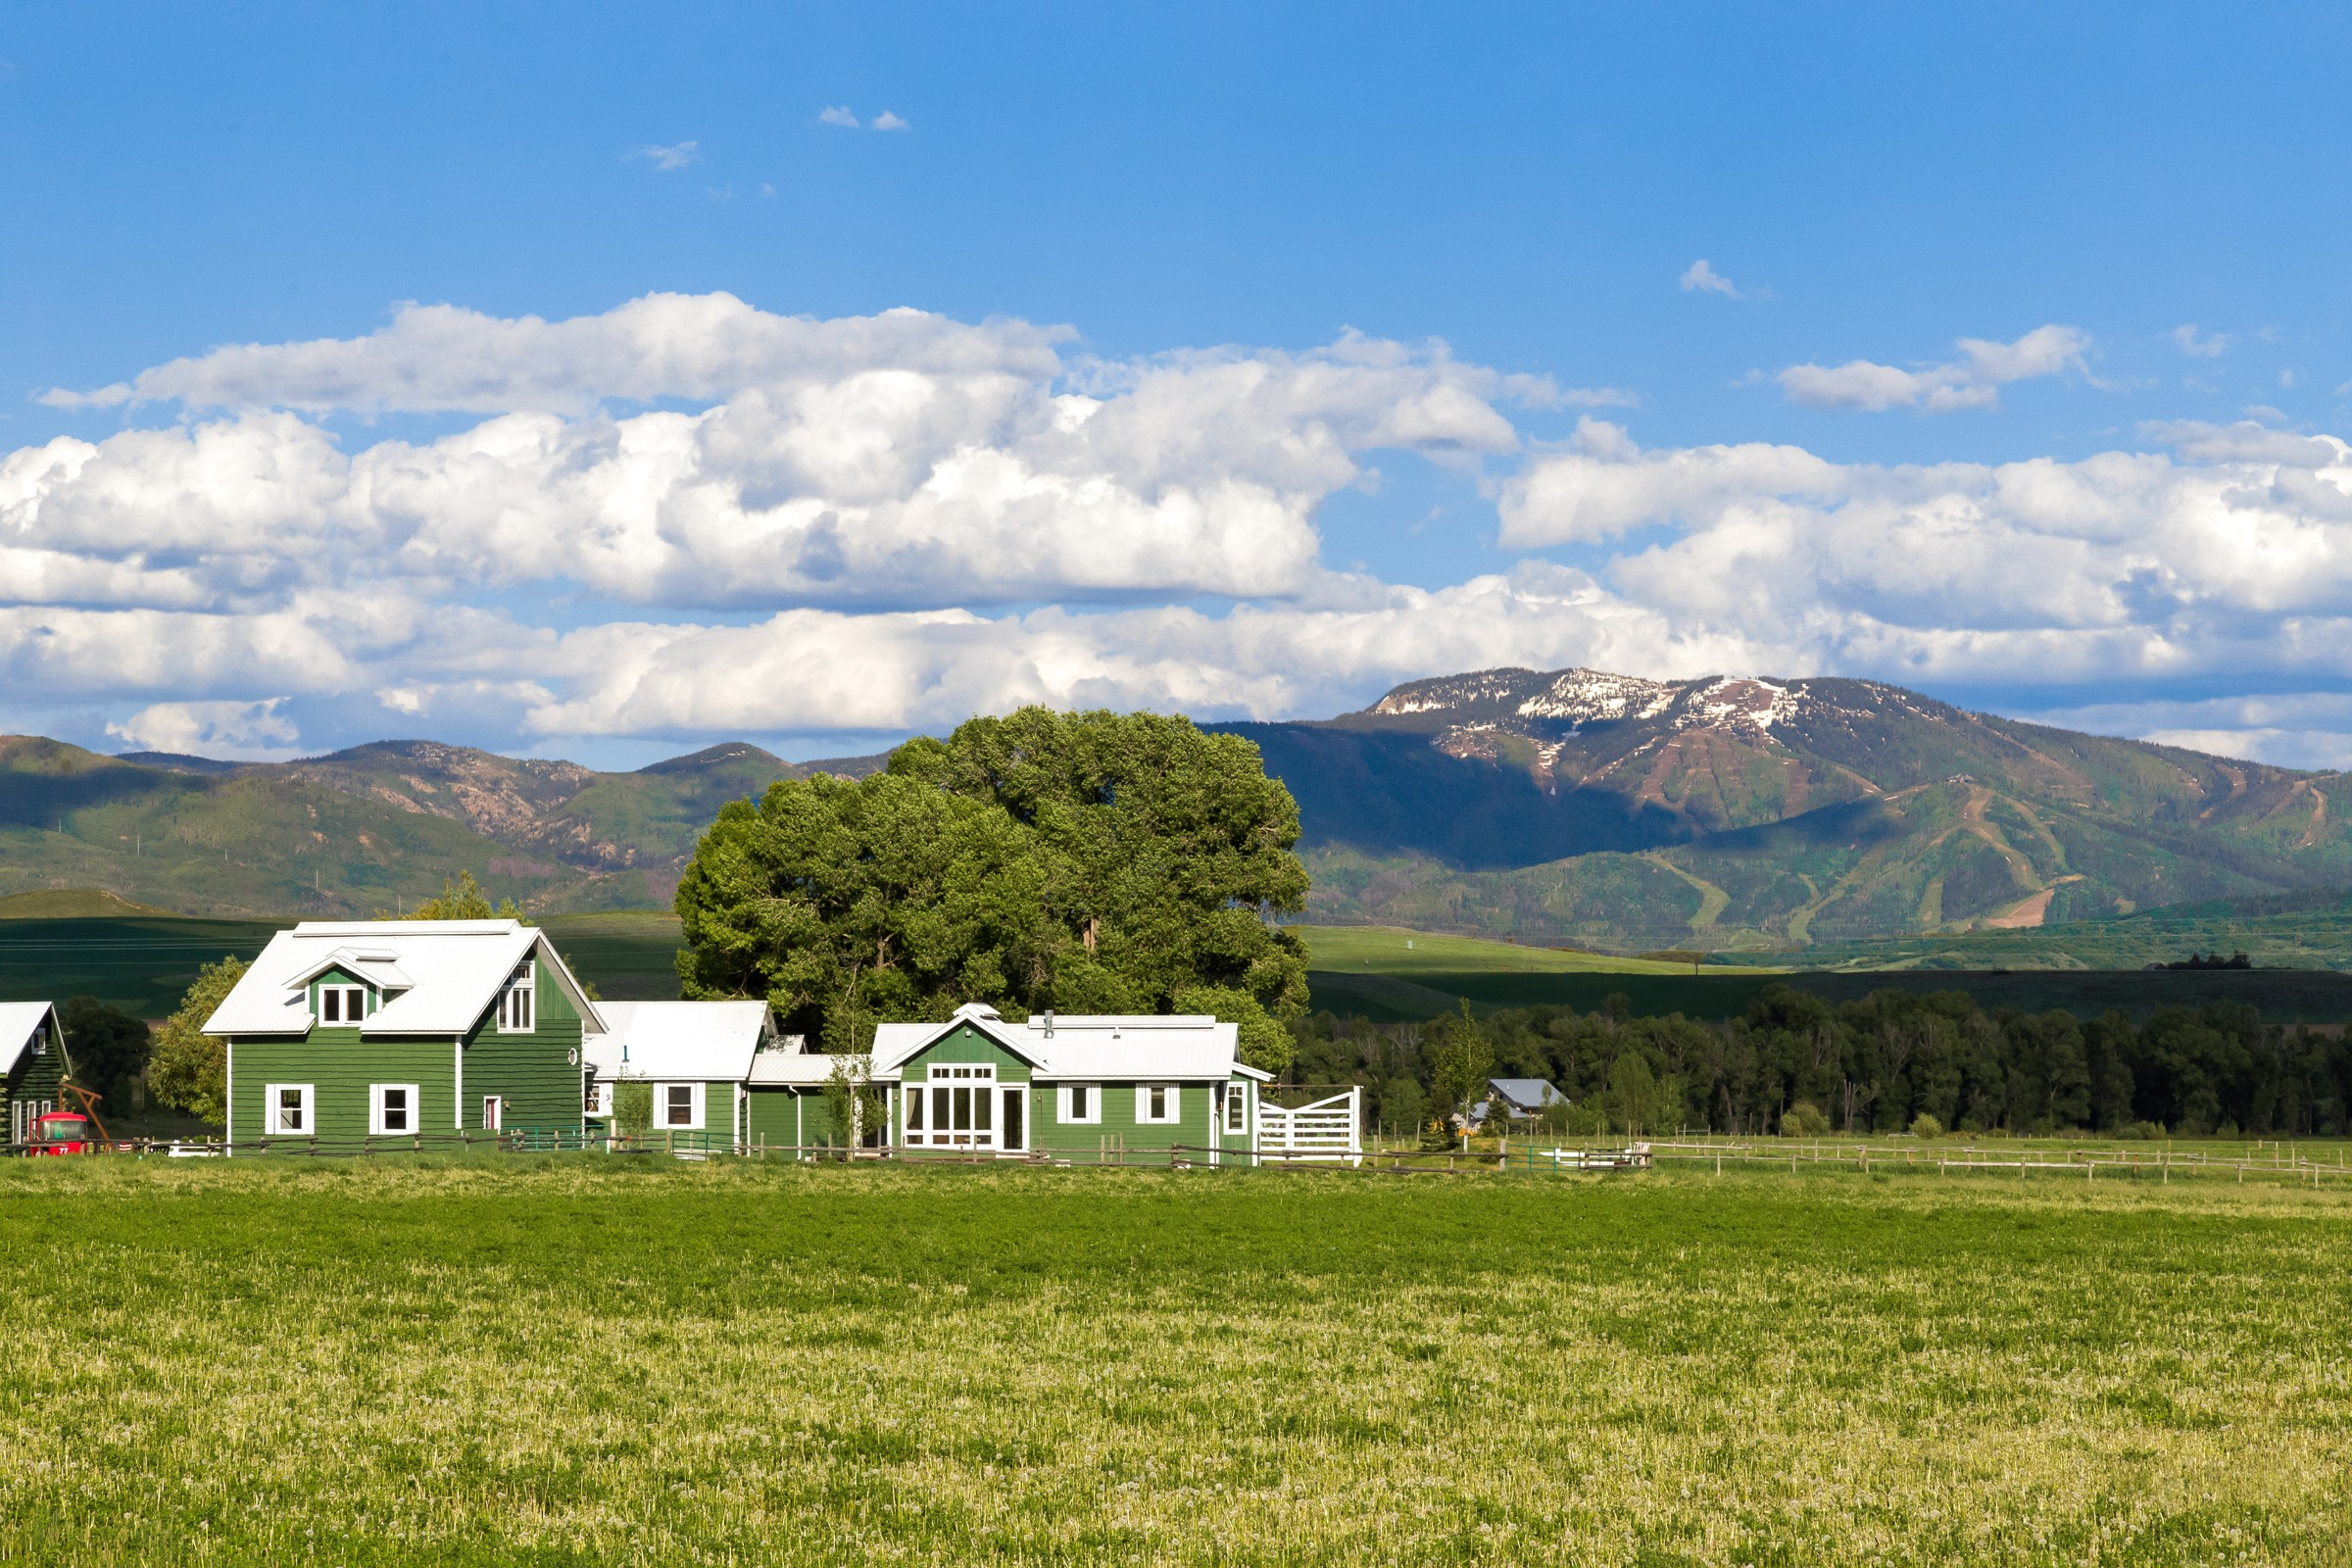 Single Family Home for Sale at Crossroads Ranch 41070 County Road 44 Steamboat Springs, Colorado, 80487 United States